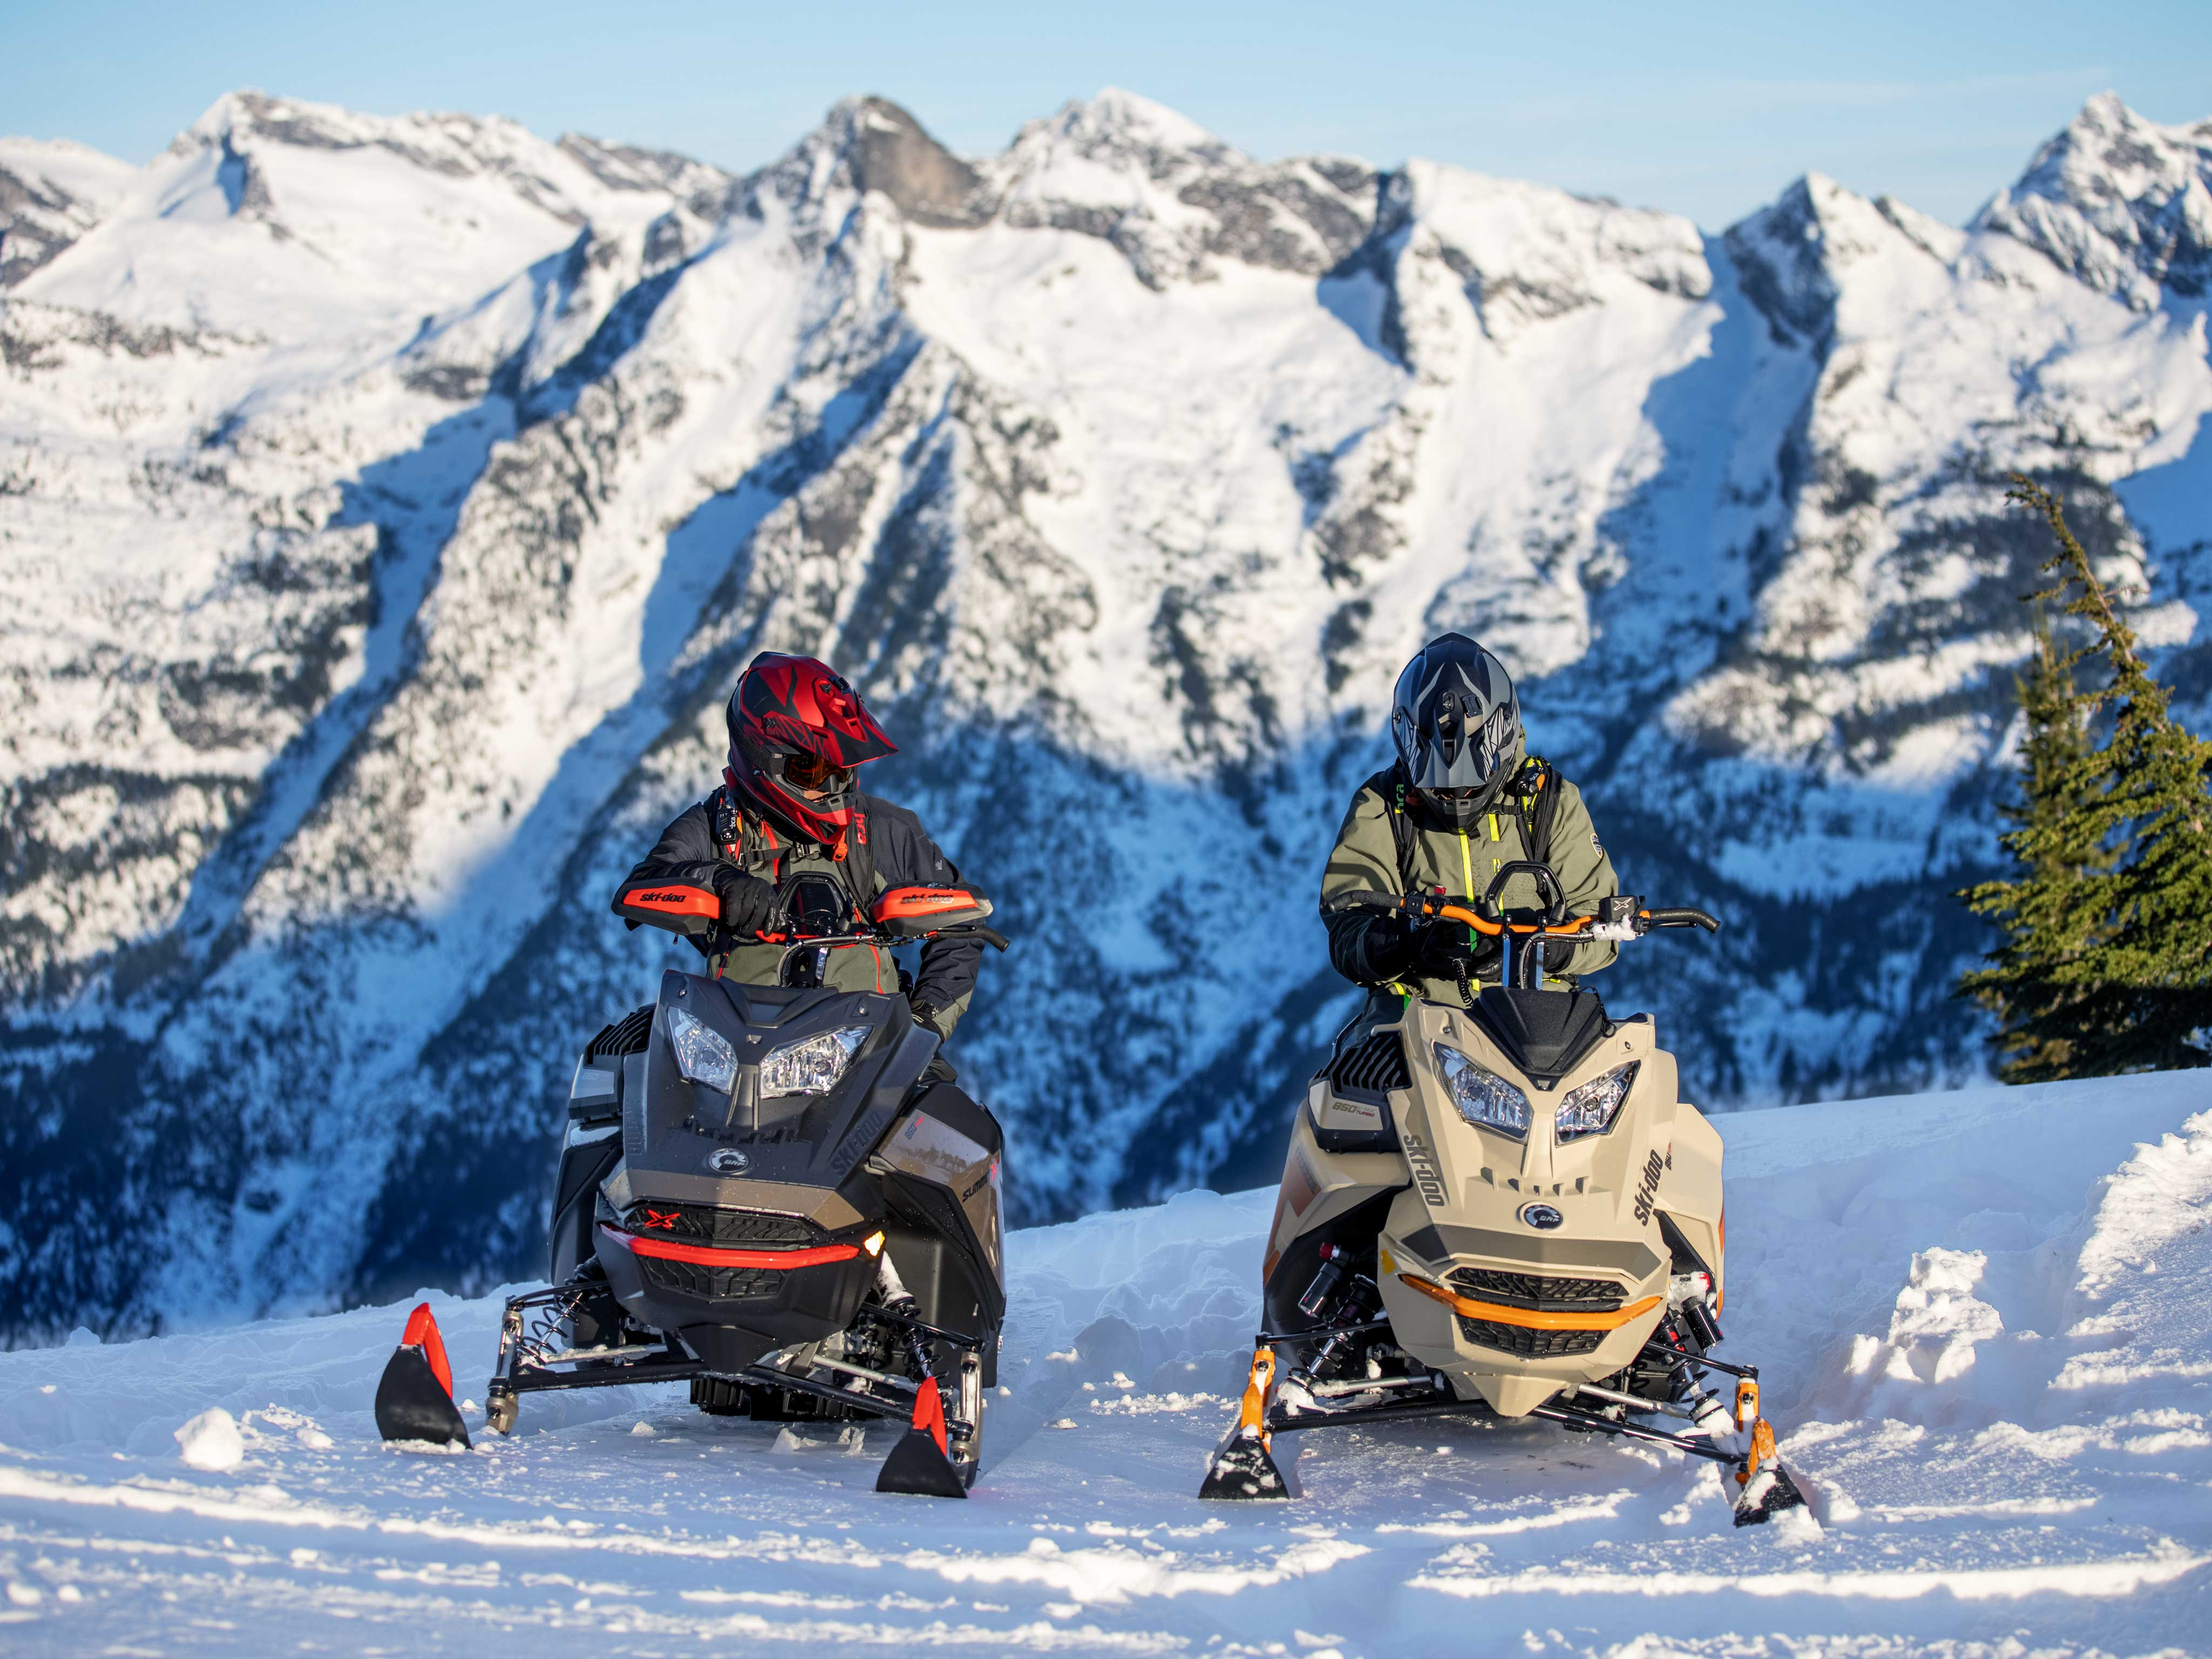 2 riders talking during a snowmobile ride